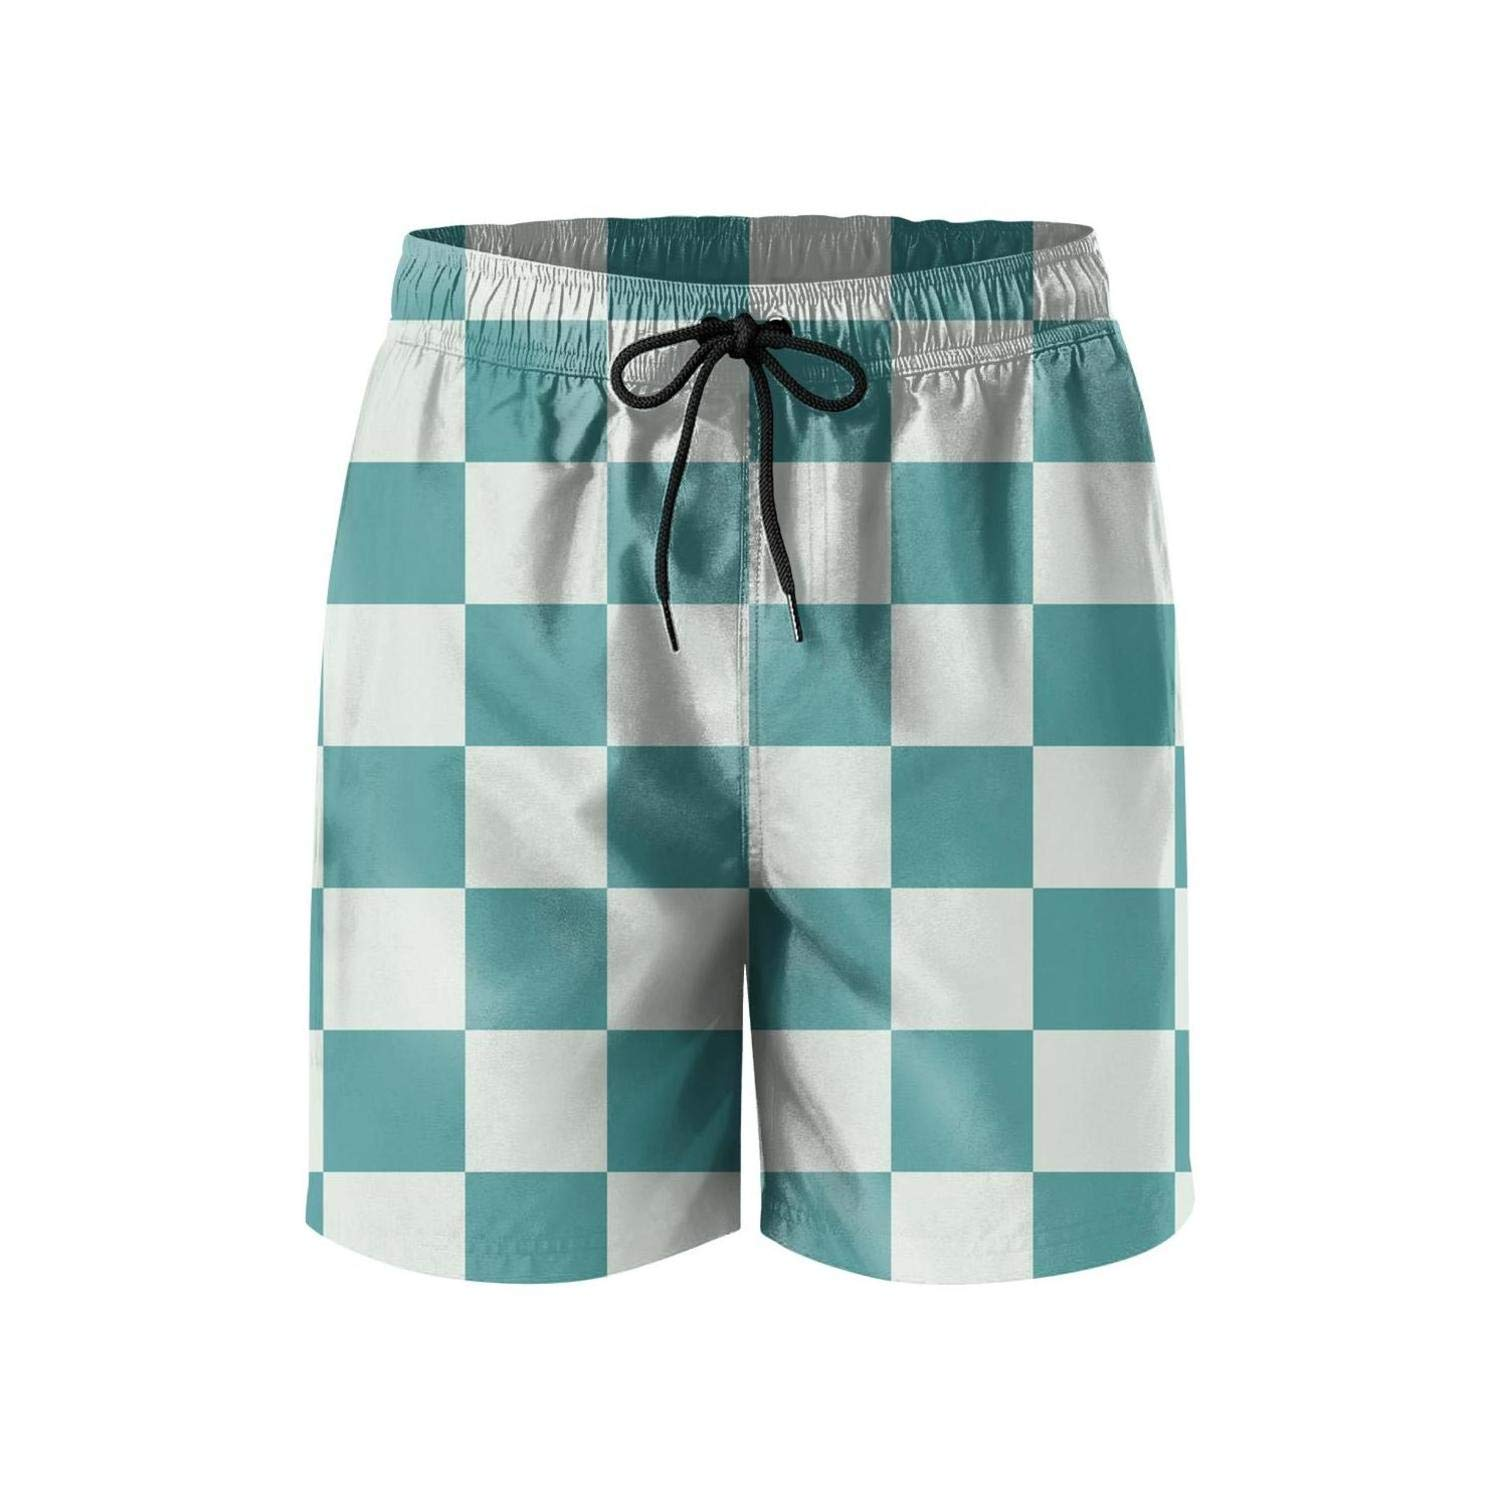 NDKSO3UH Popular Green and Yellow Checkered Mens Swim Trunks Quick Dry Holiday Mesh Lining Bathing Suits with Drawstring